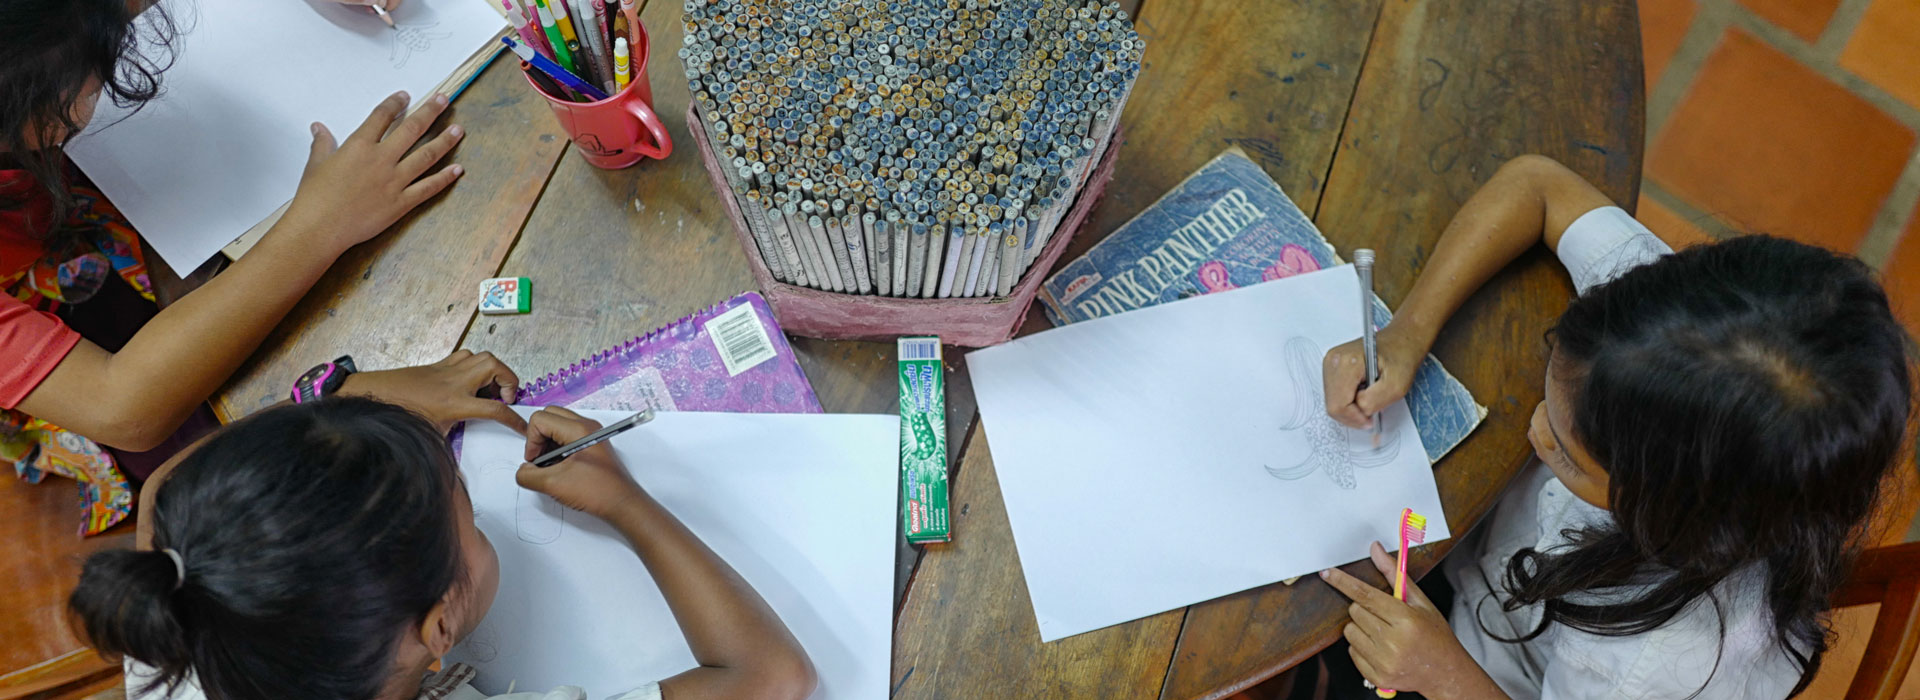 ARTS FOR DISADVANTAGED CAMBODIAN CHILDREN AND YOUTH